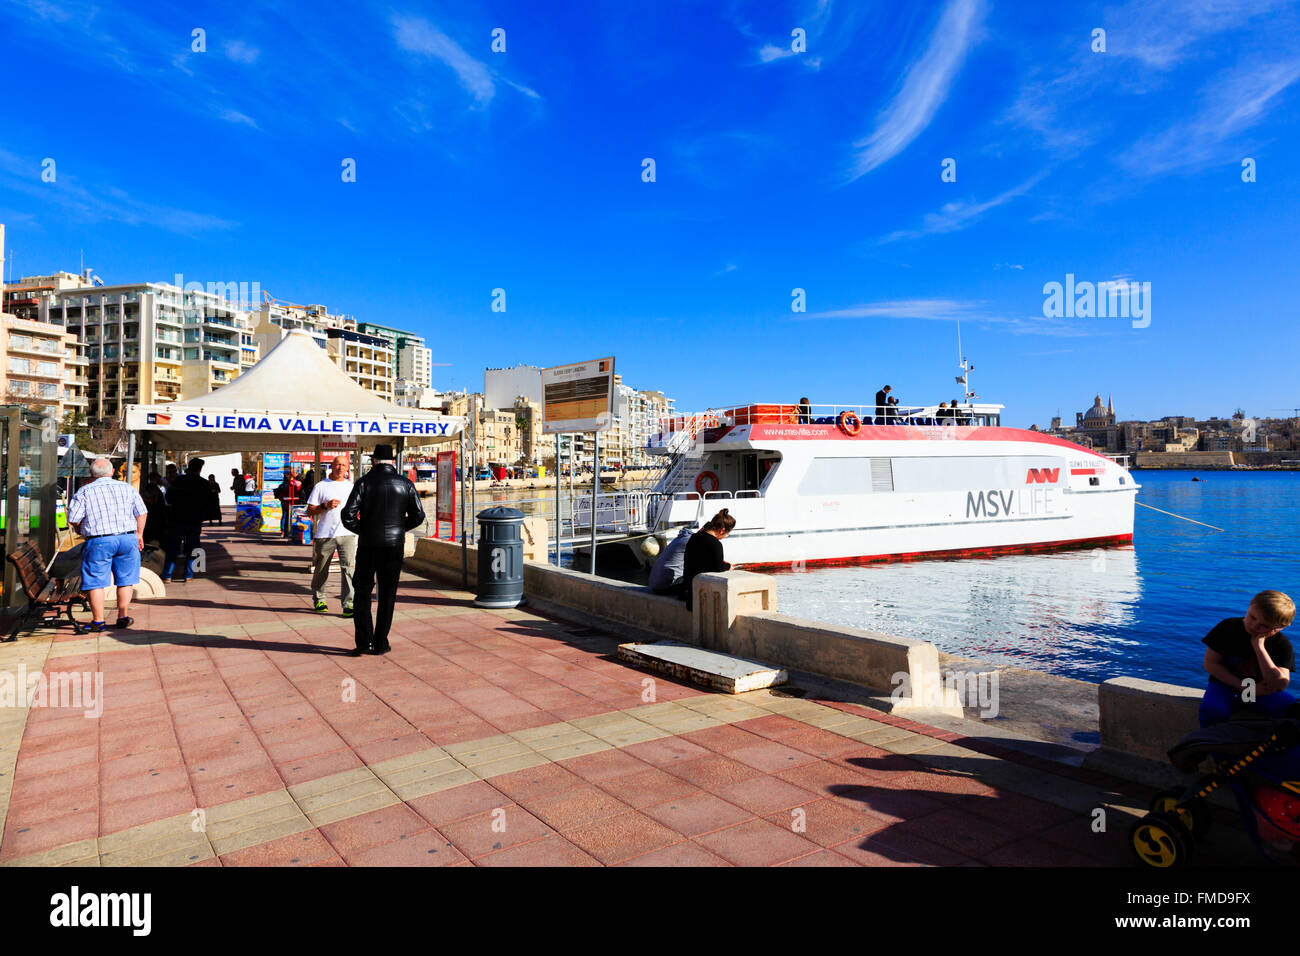 Sliema - Valletta ferry 'Topcat One' waiting to passengers to board at the Sliema pick up. - Stock Image